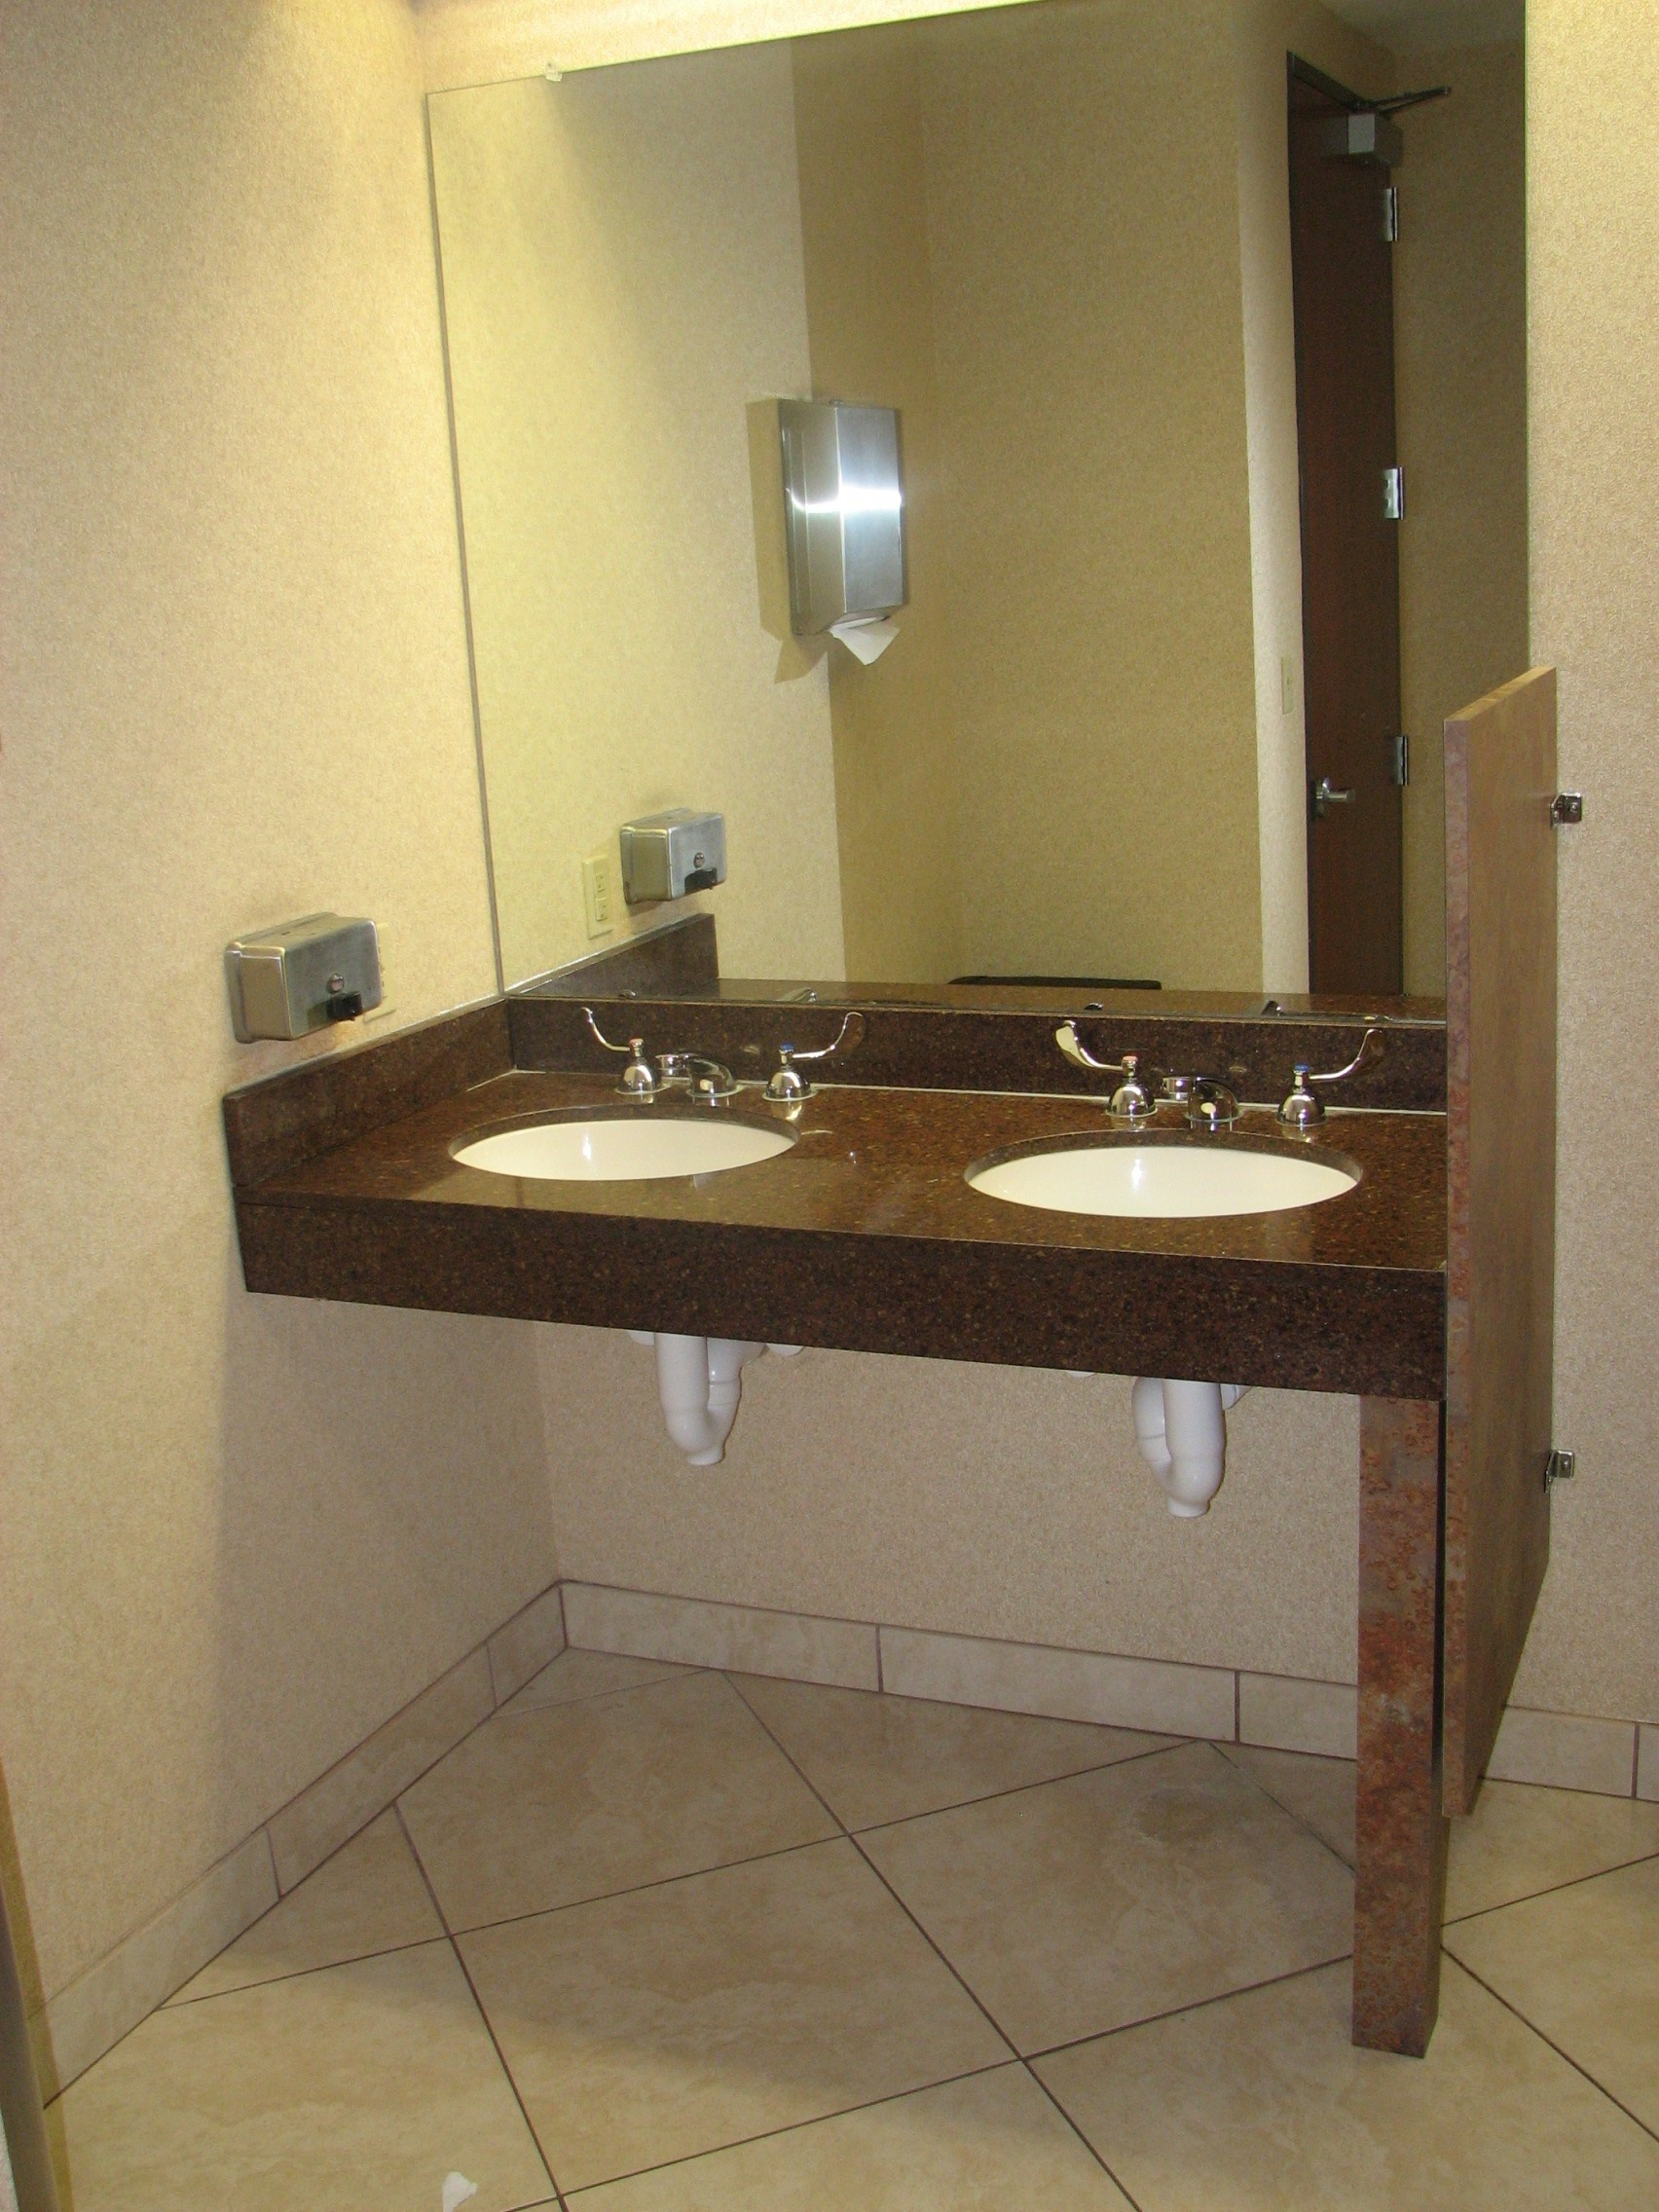 Commercial Ada Bathroom Sink Vanity